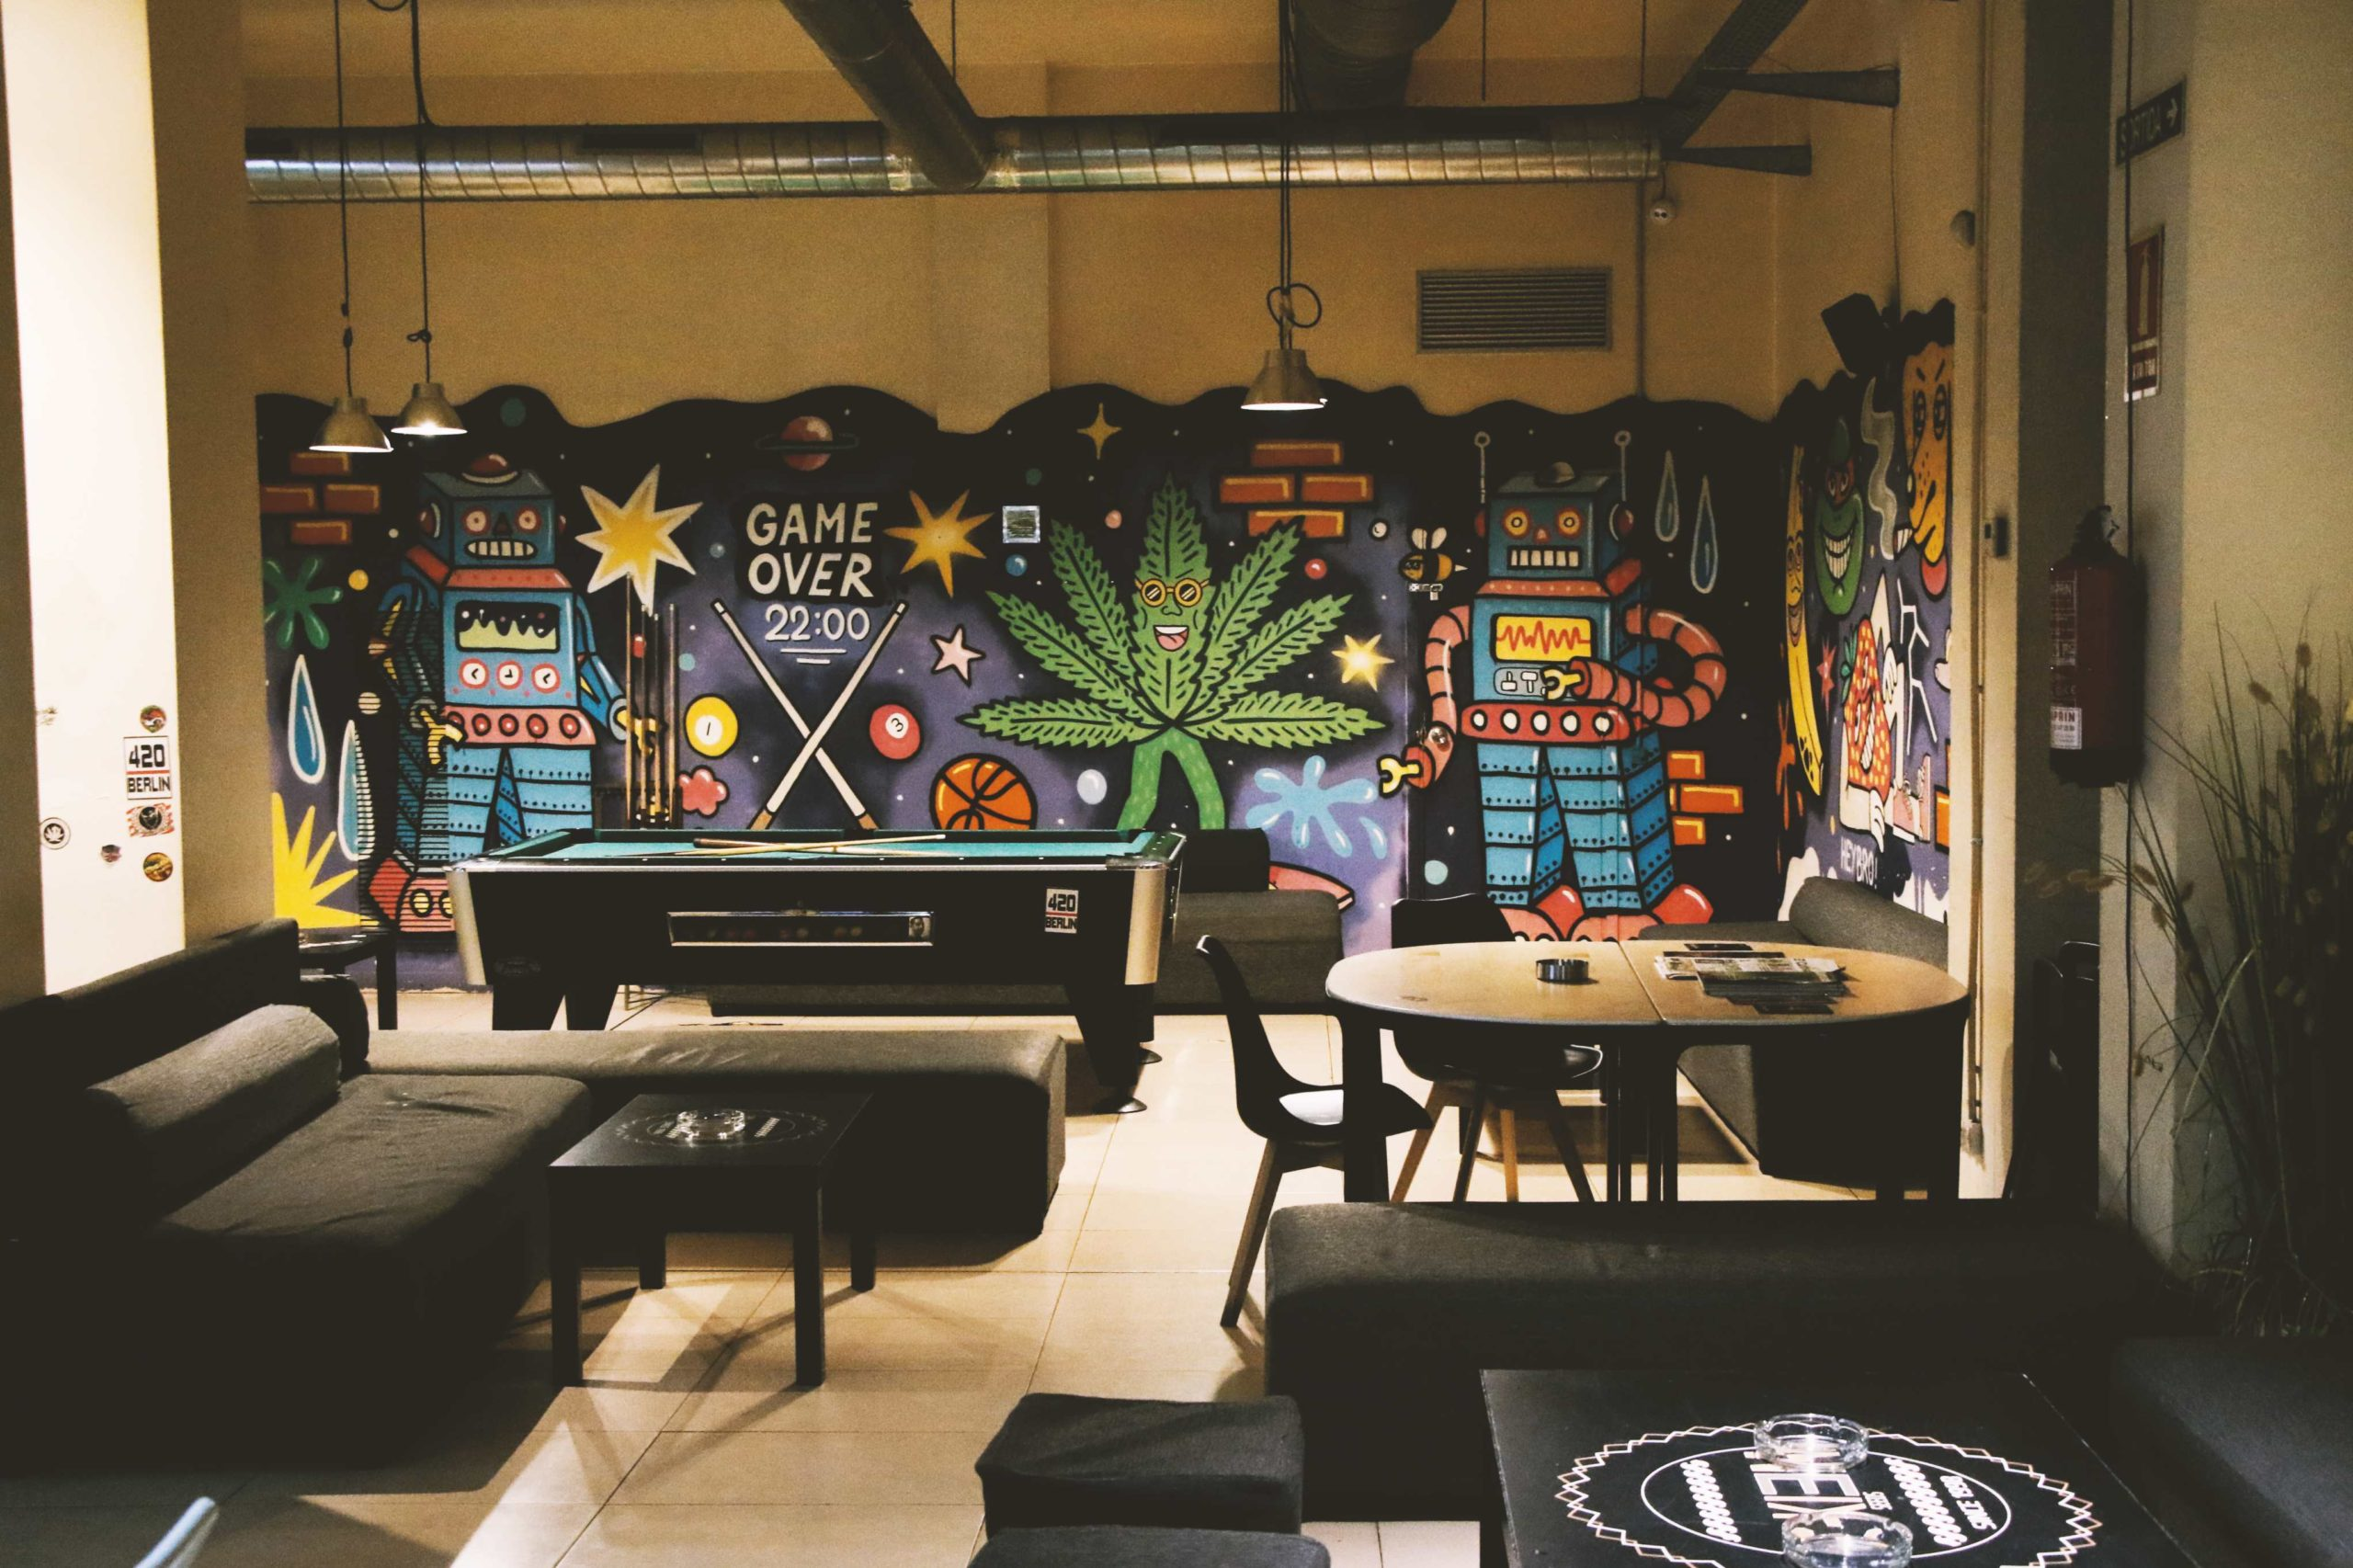 gelato weed club space with pool table chairs sofas